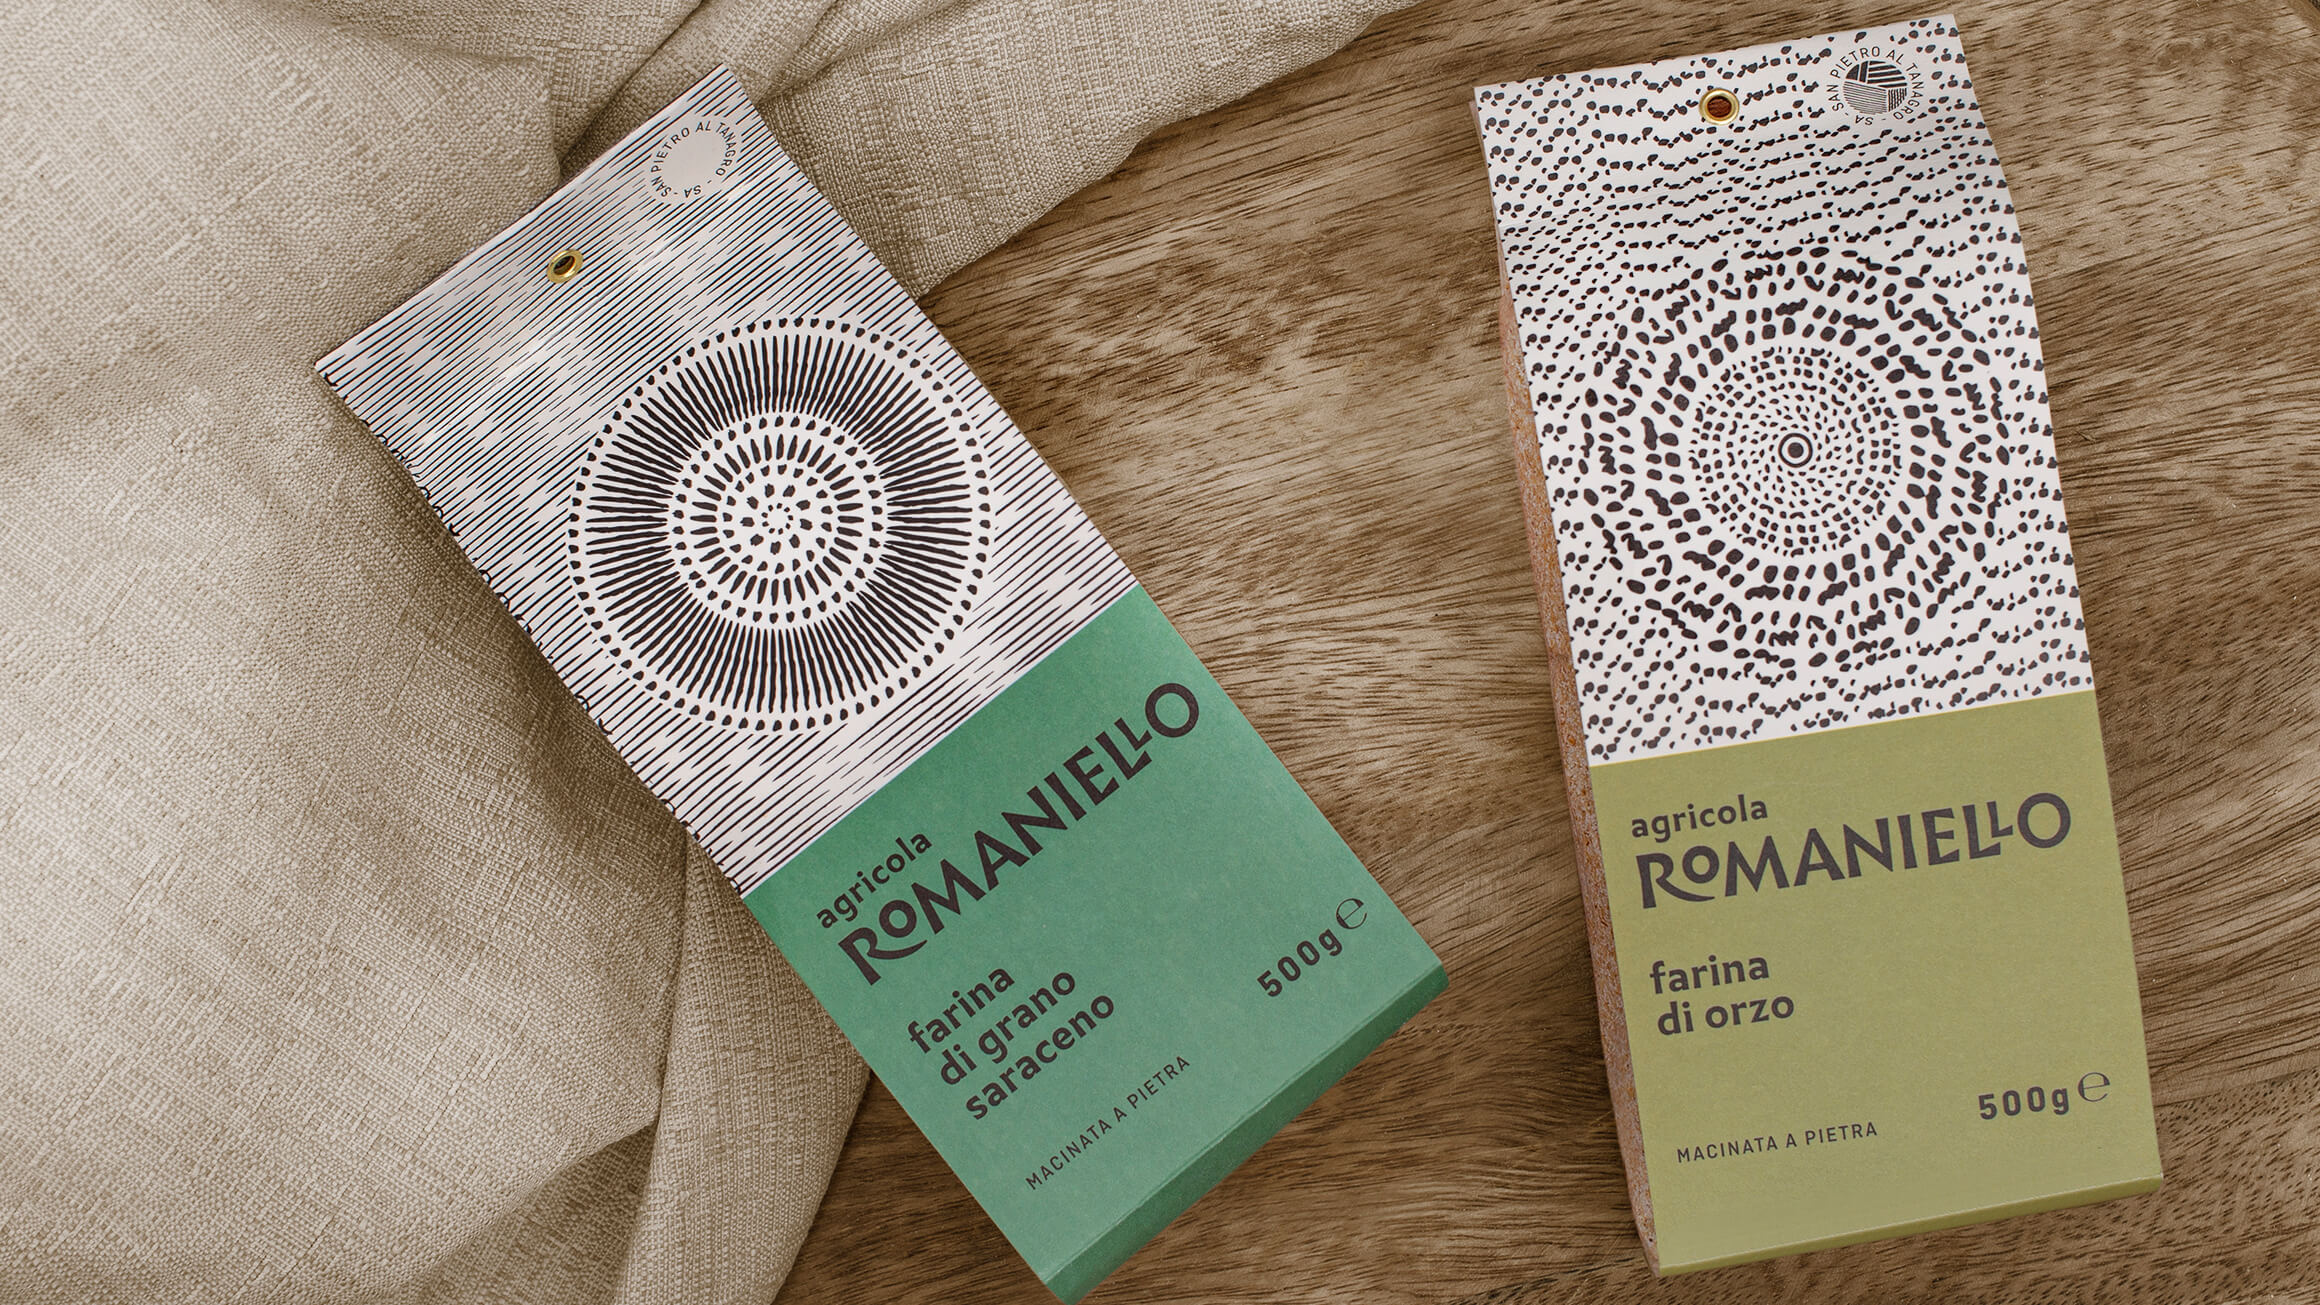 Agricola Romaniello Packaging Cereals, Legumes and Flours Designed by Lettera7